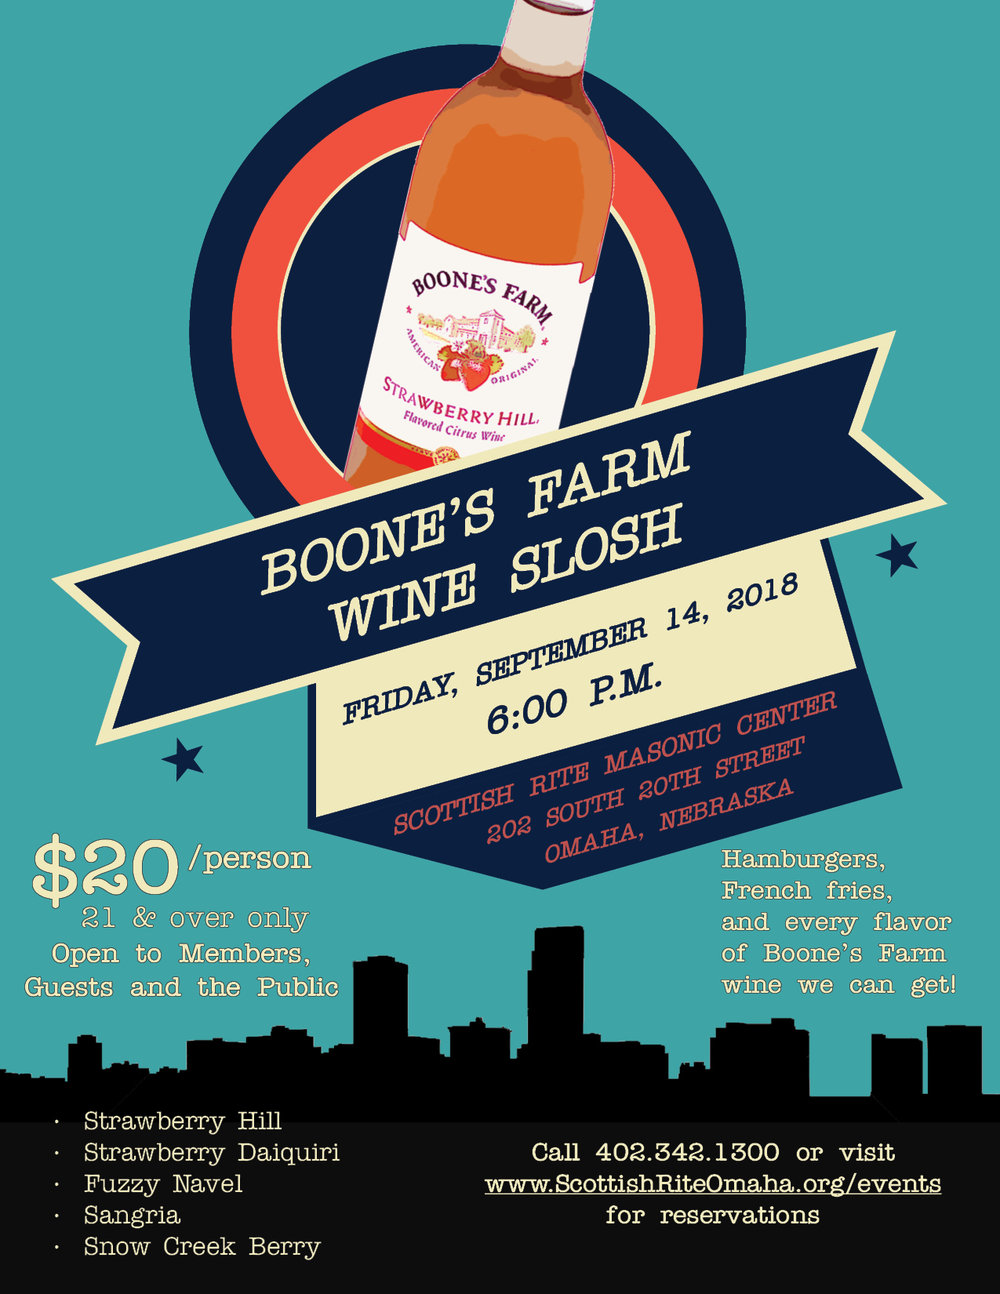 Click above to download a PDF of the Boone's Farm Wine Slosh flier.